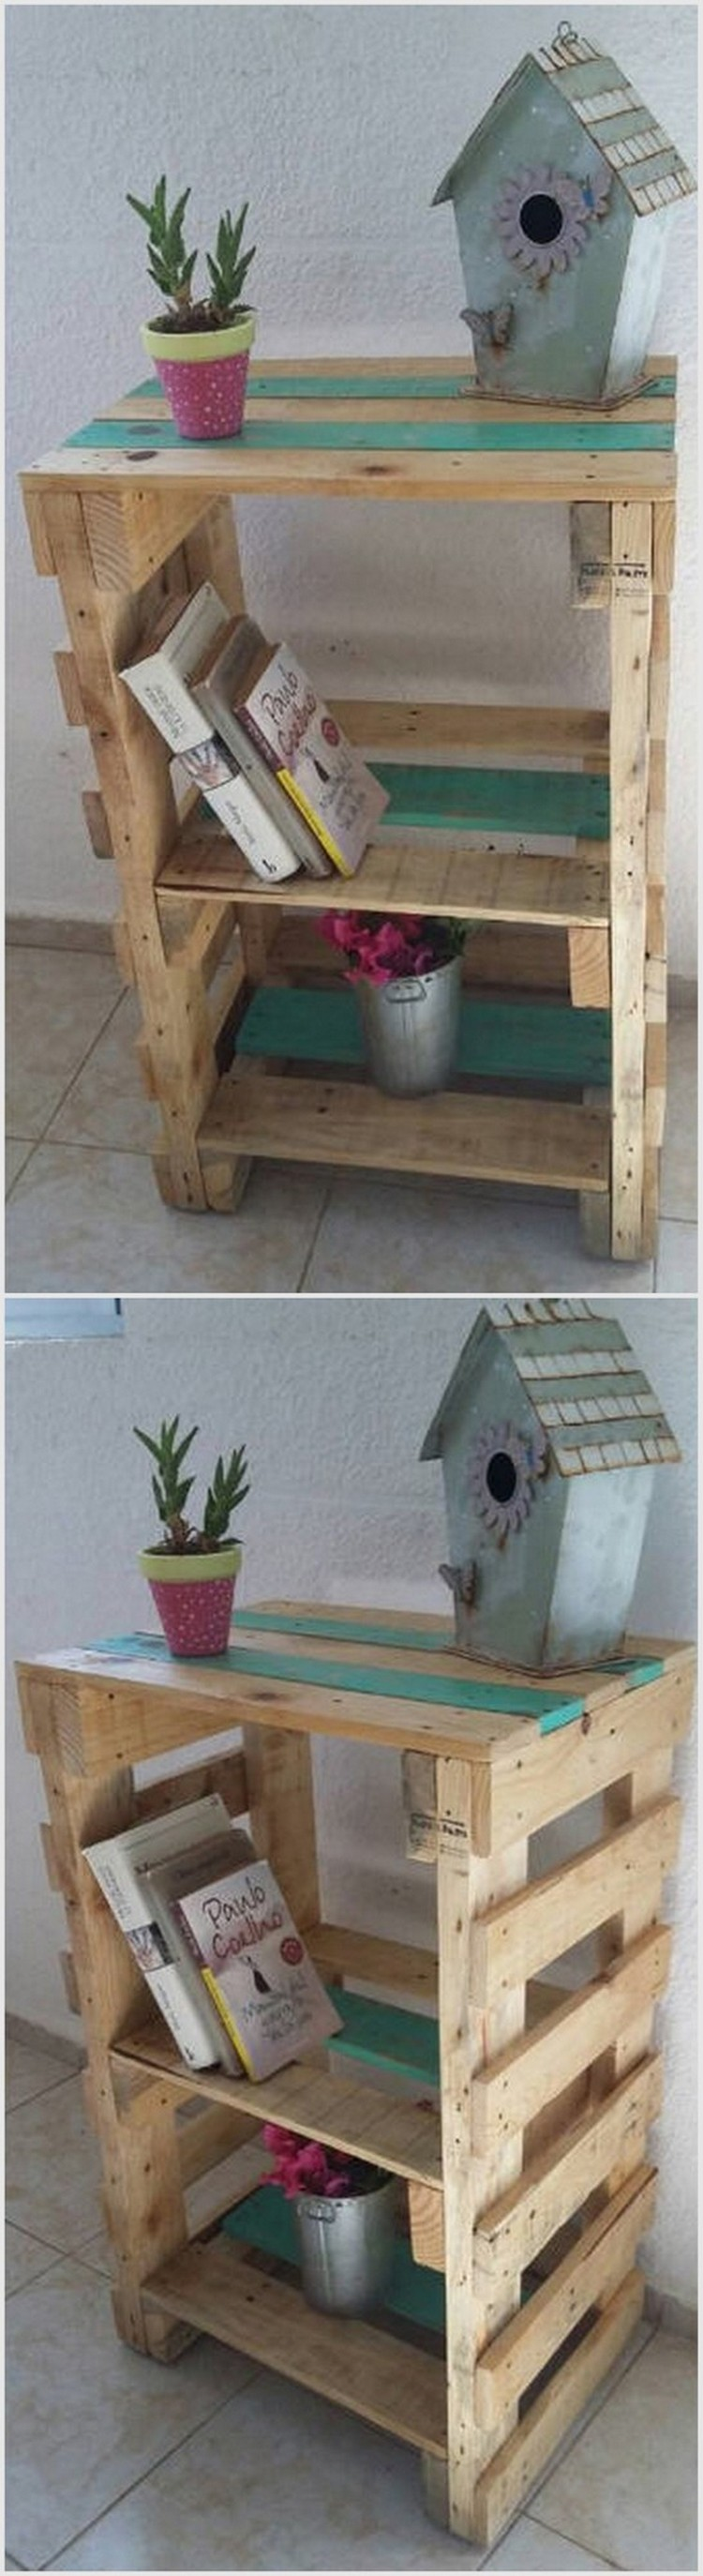 Affordable and Easy Wood Pallet Projects | Pallet Wood Projects